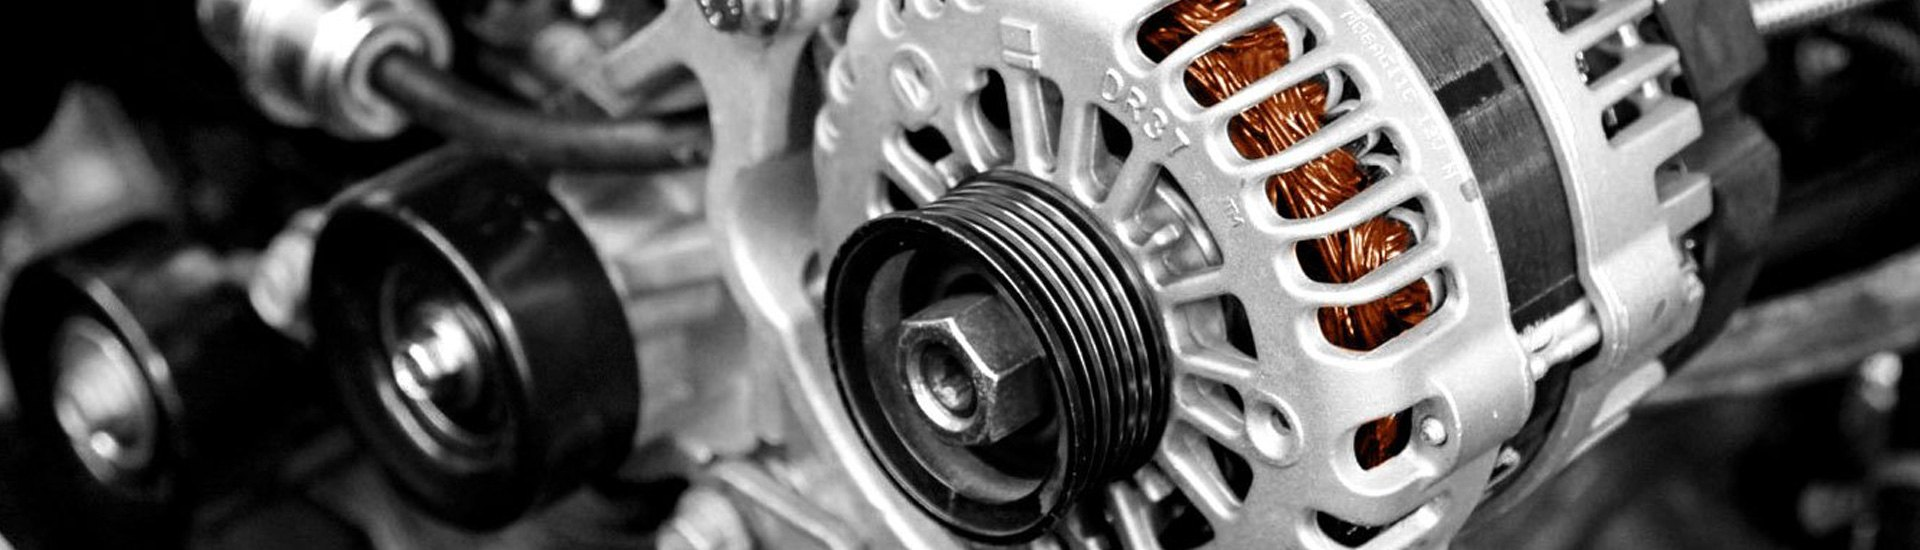 When Is It Time To Replace My Alternator?